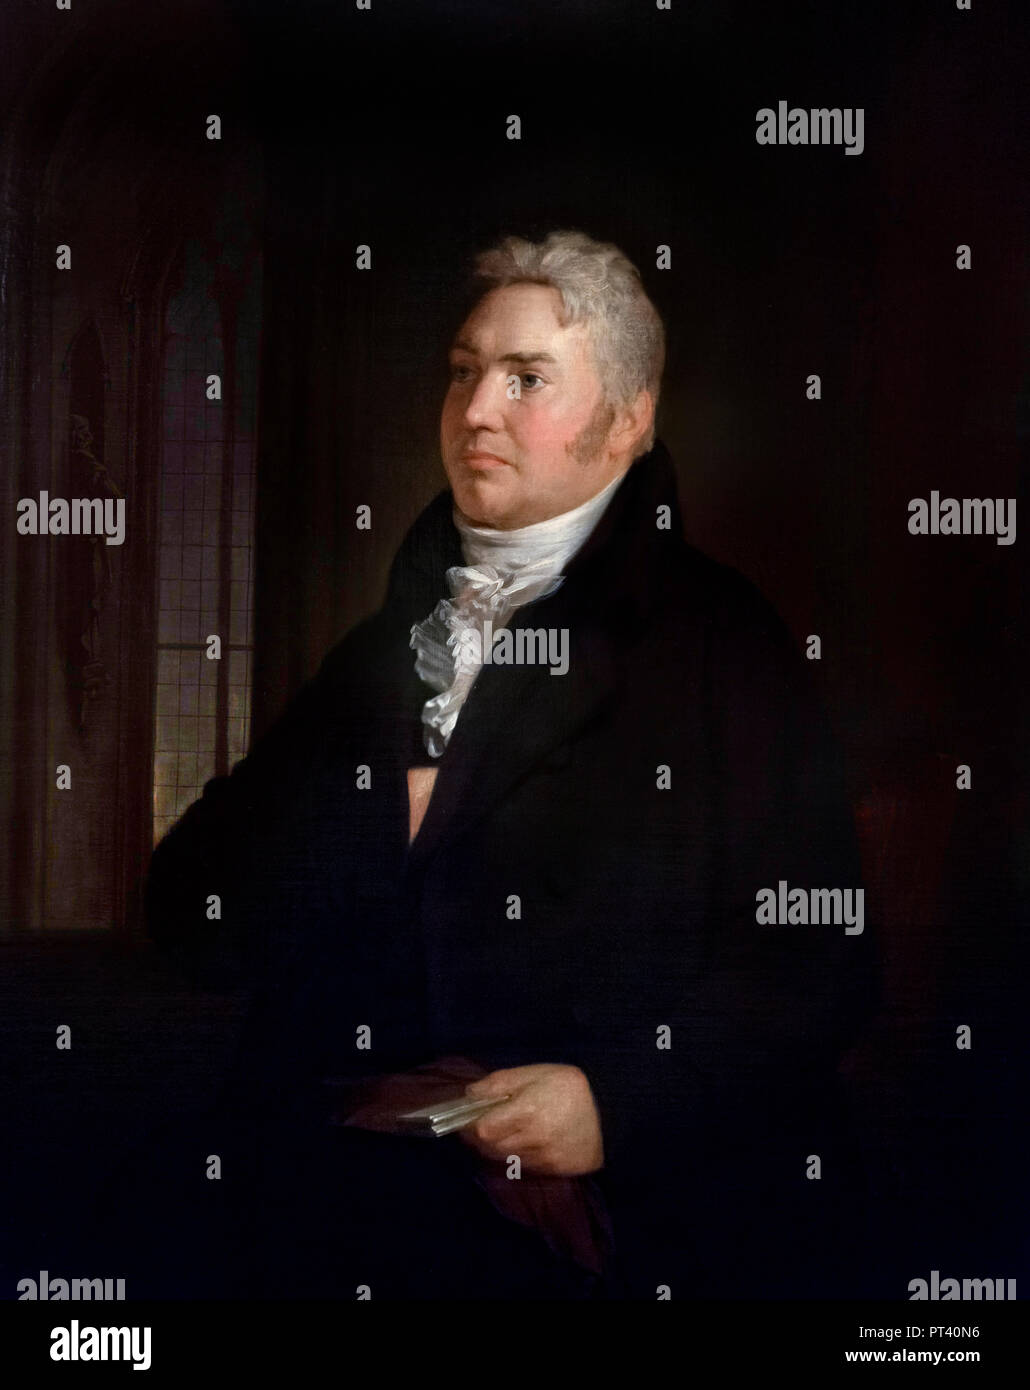 Samuel Taylor Coleridge (1772-1834) portrait by Washington Allston, oil on canves, 1814. - Stock Image